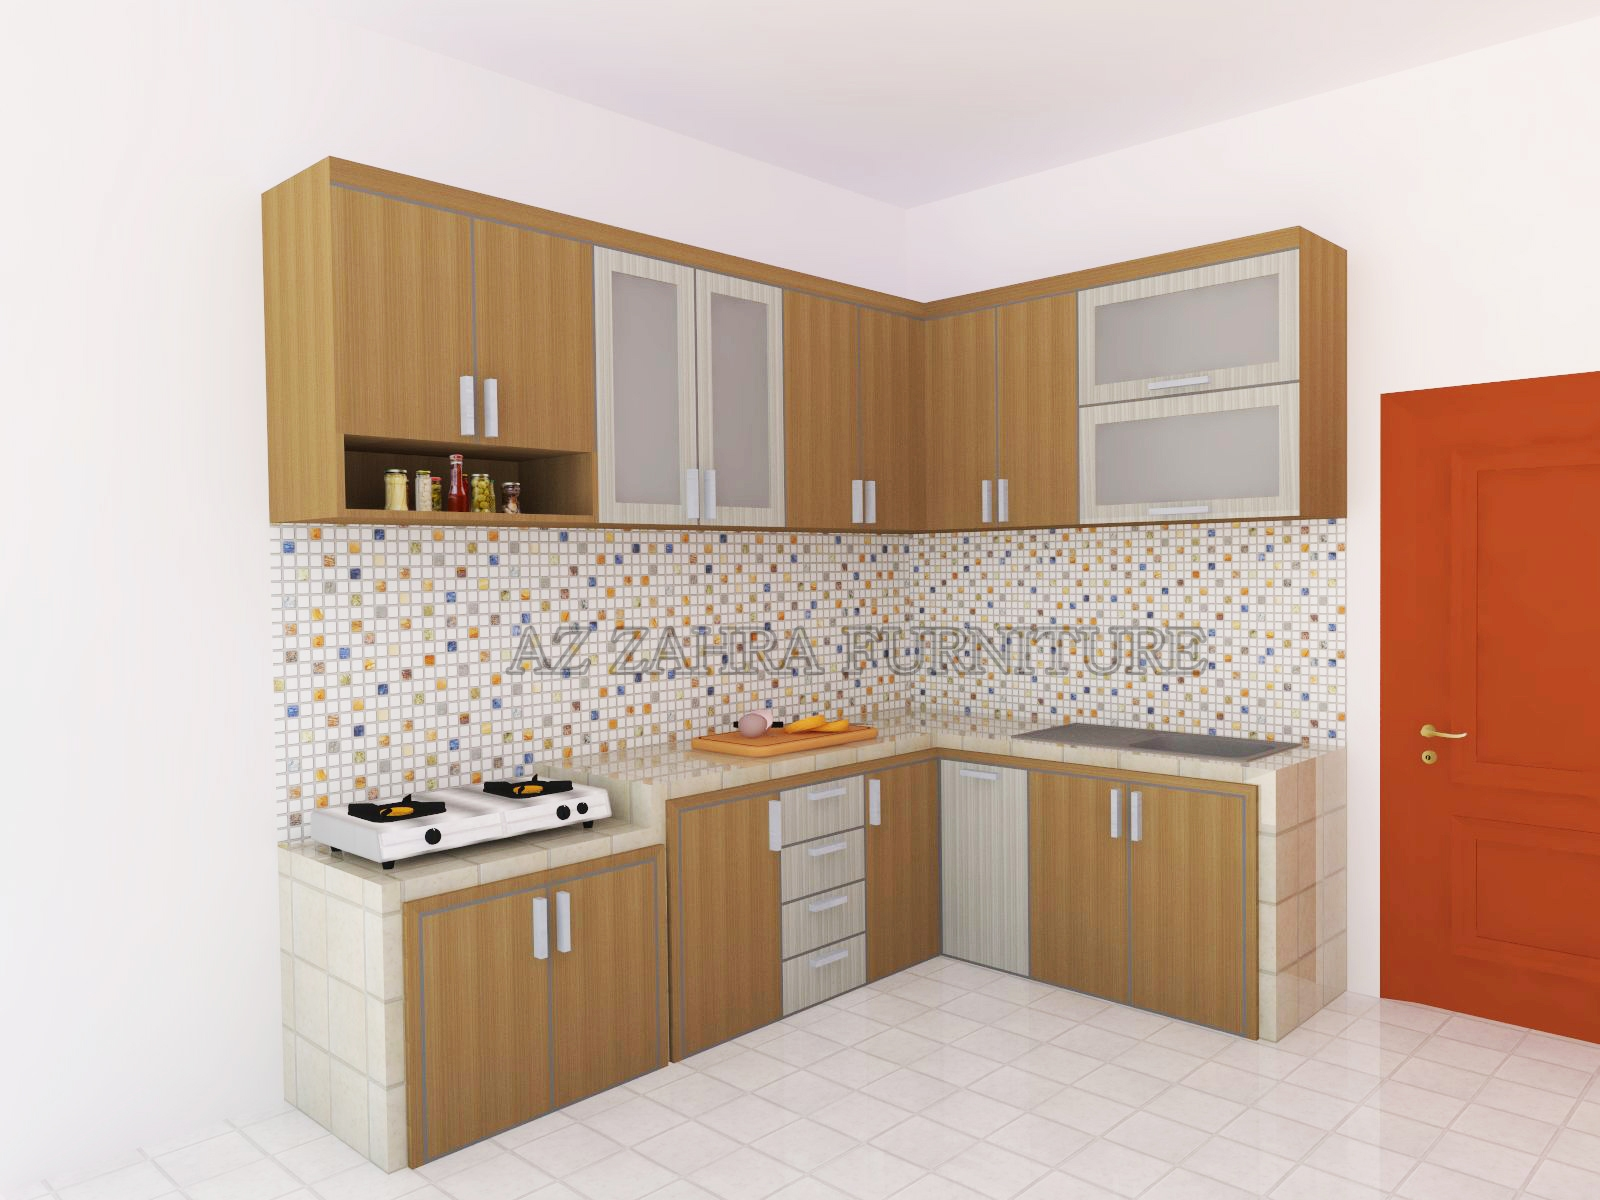 Kitchen set minimalis murah semarang azzahra furniture for Harga kitchen set murah